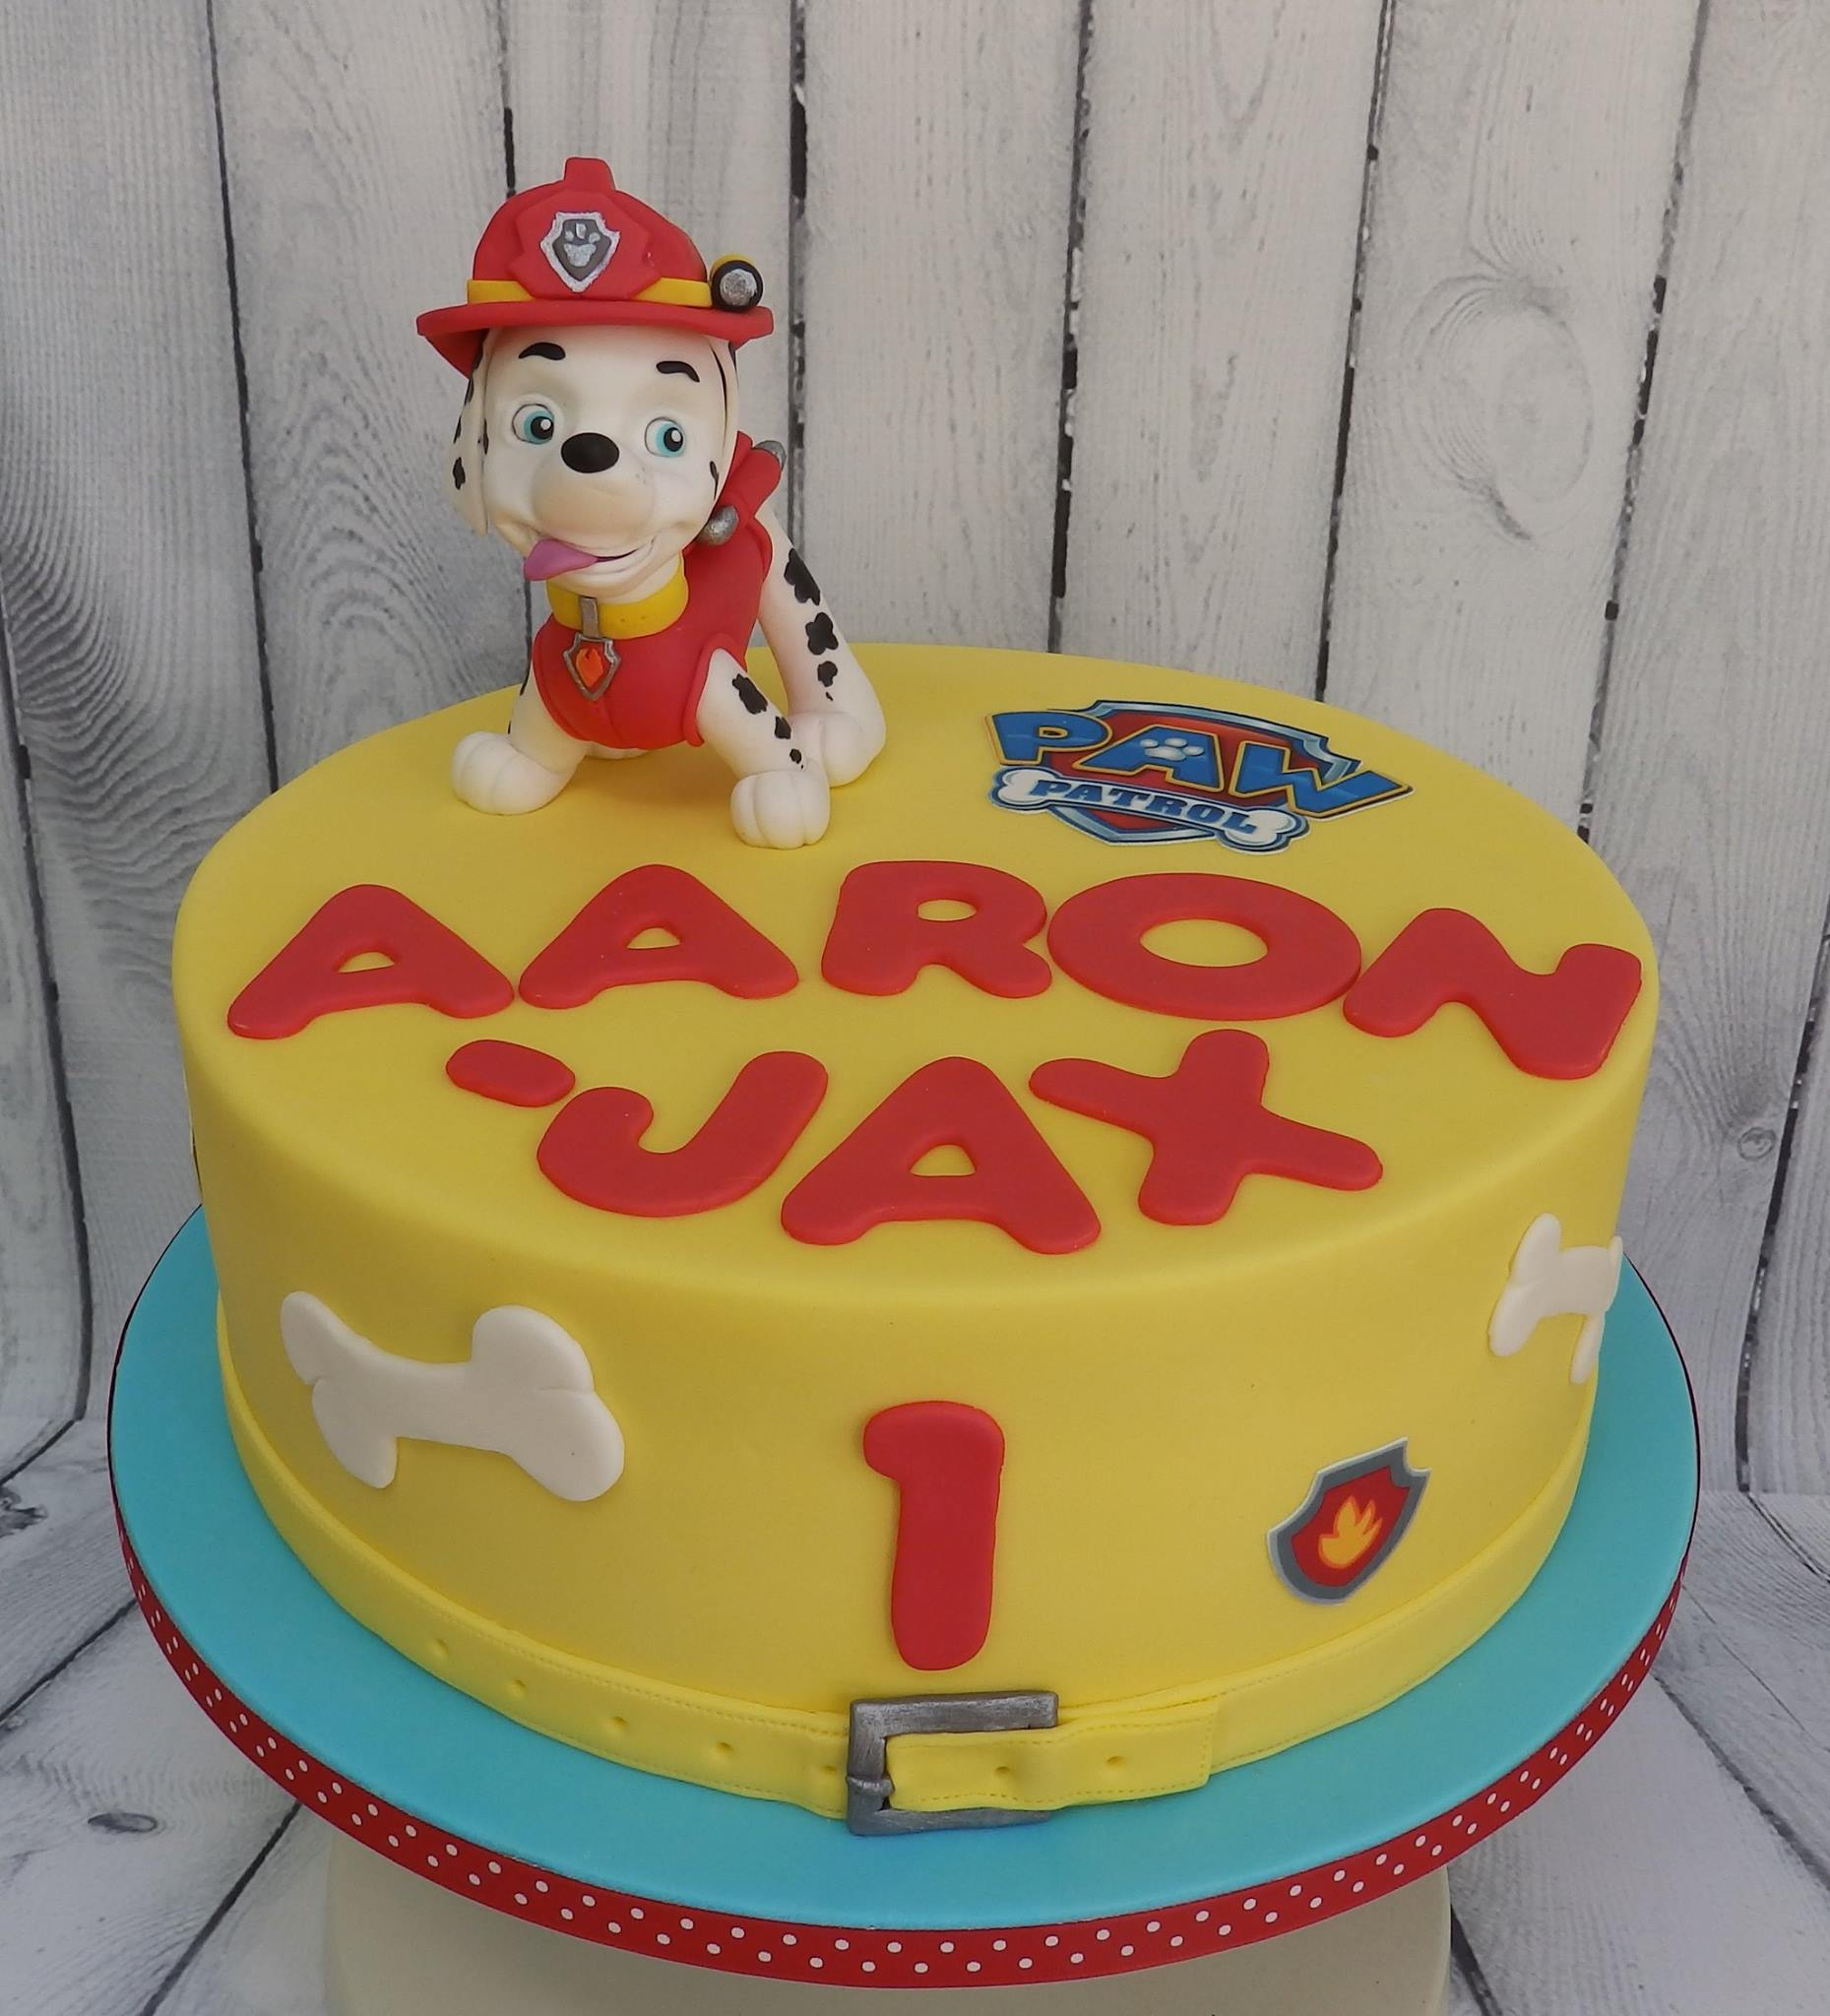 Cute Children's Birthday Cake